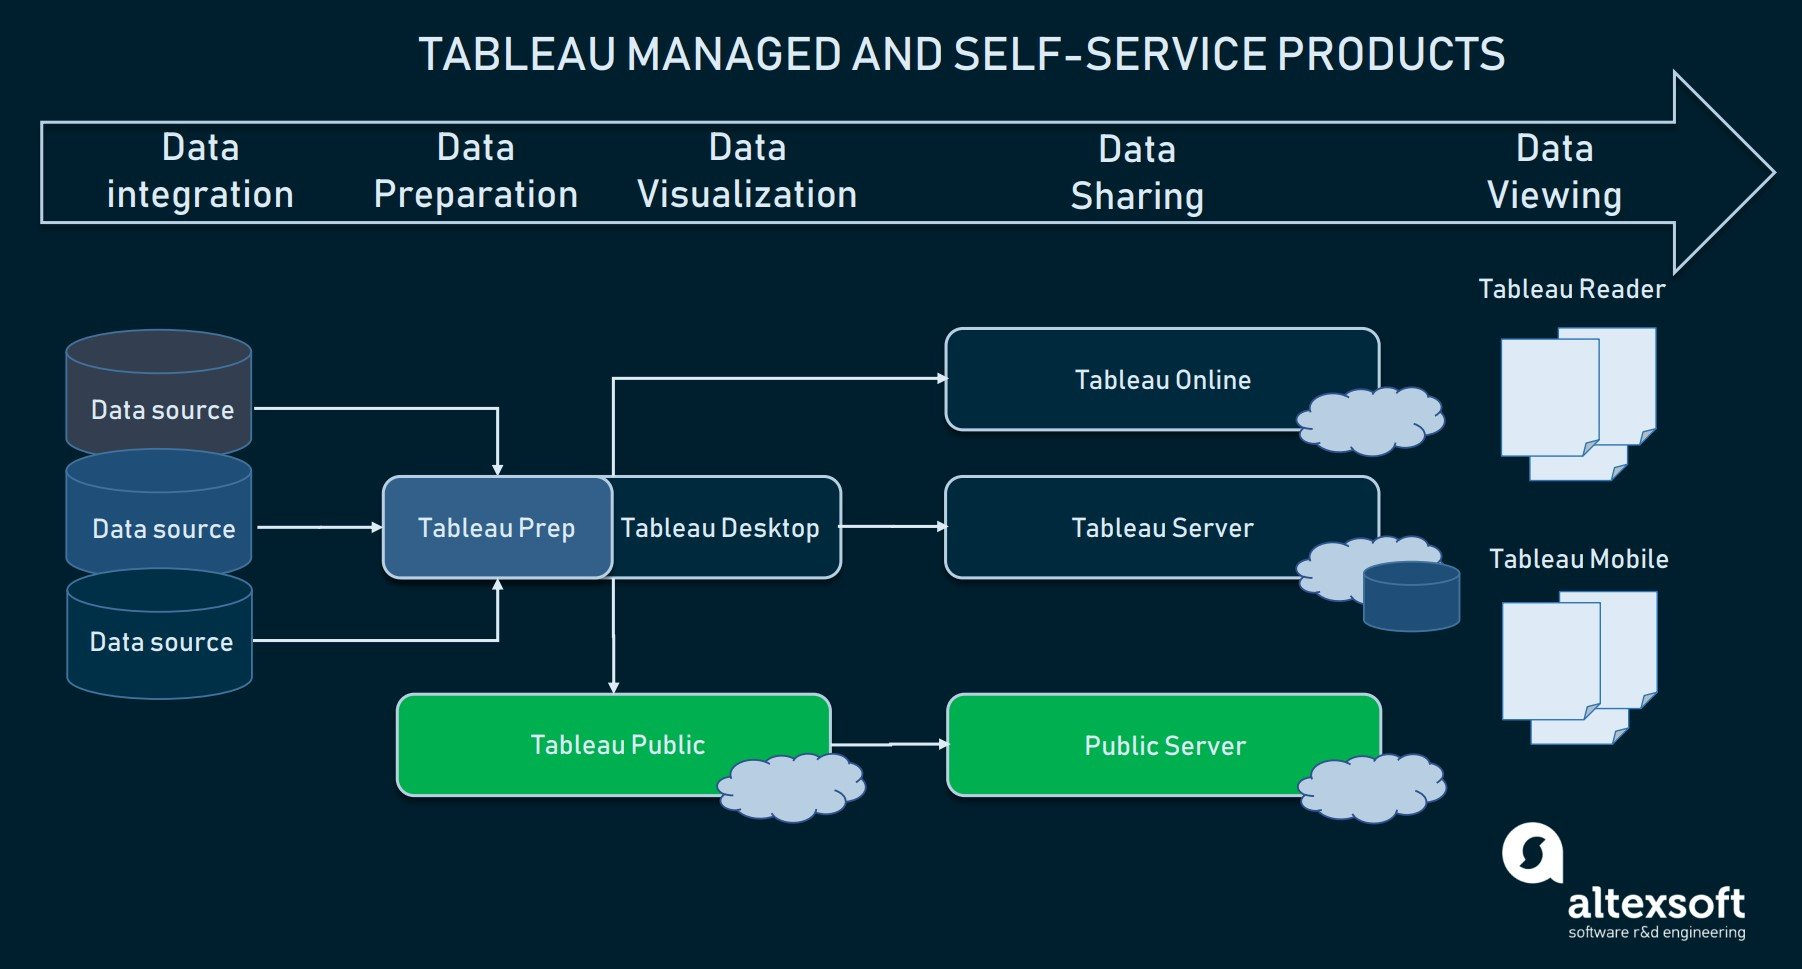 A full spectre of Tableau BI products